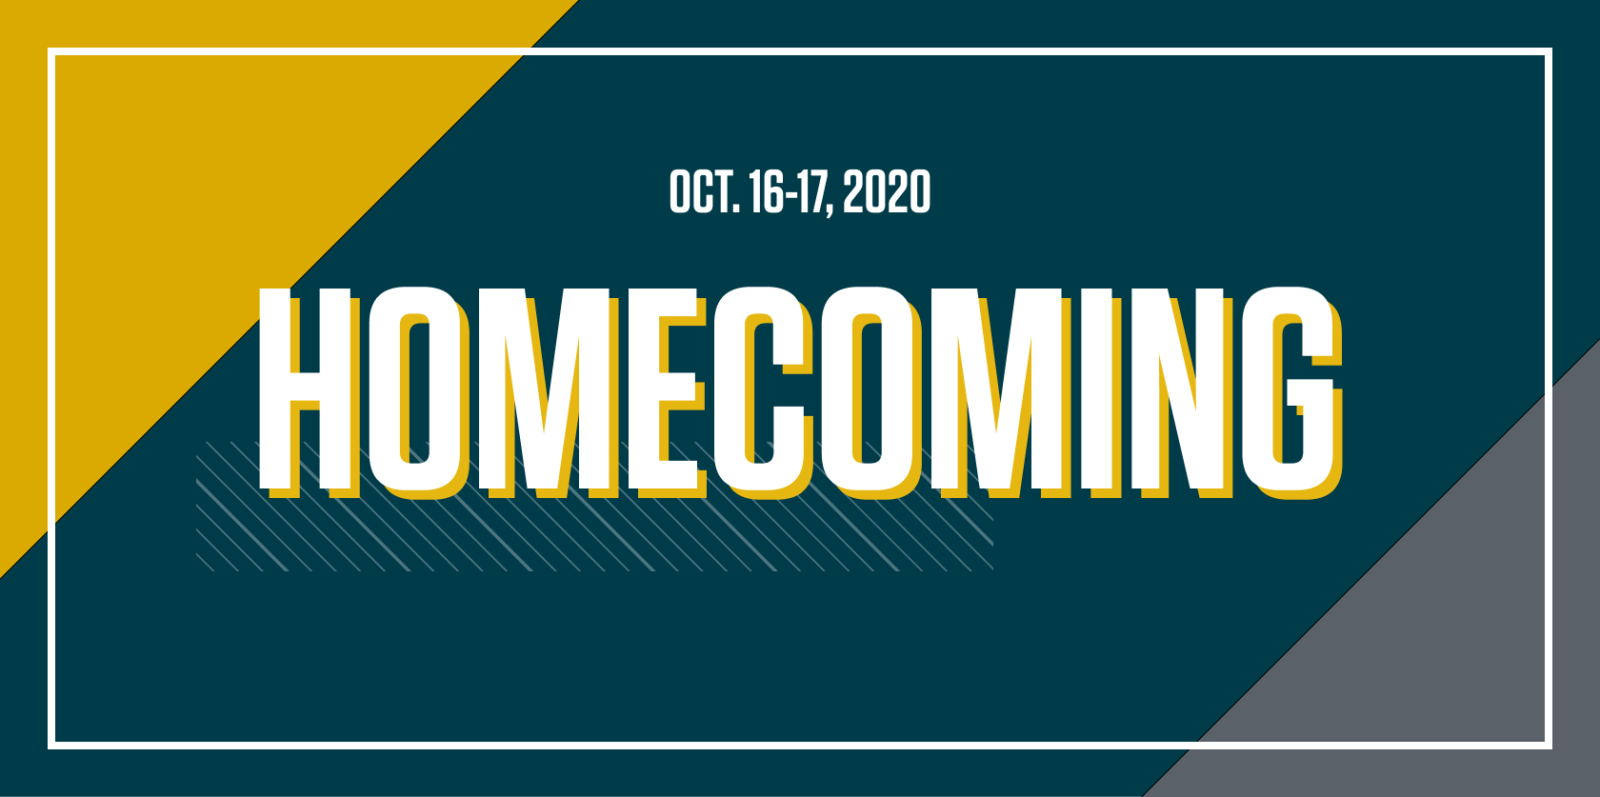 Homecoming Oct. 16-17, 2020